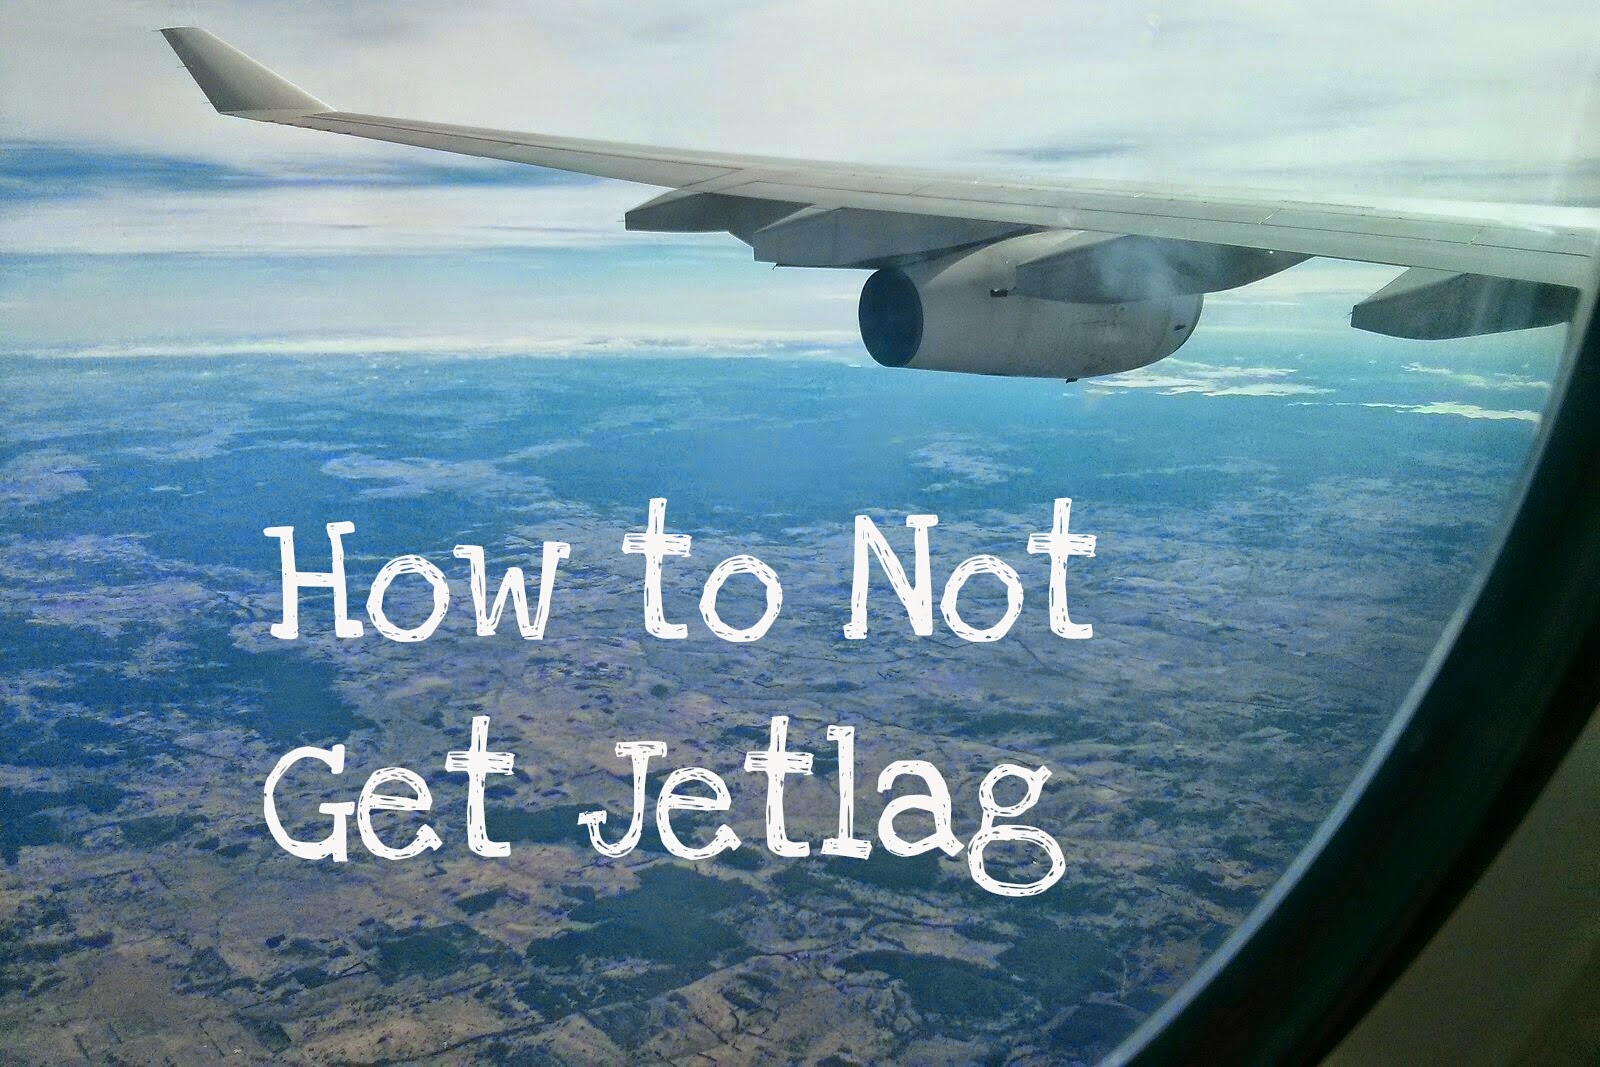 How to Not Get Jetlag